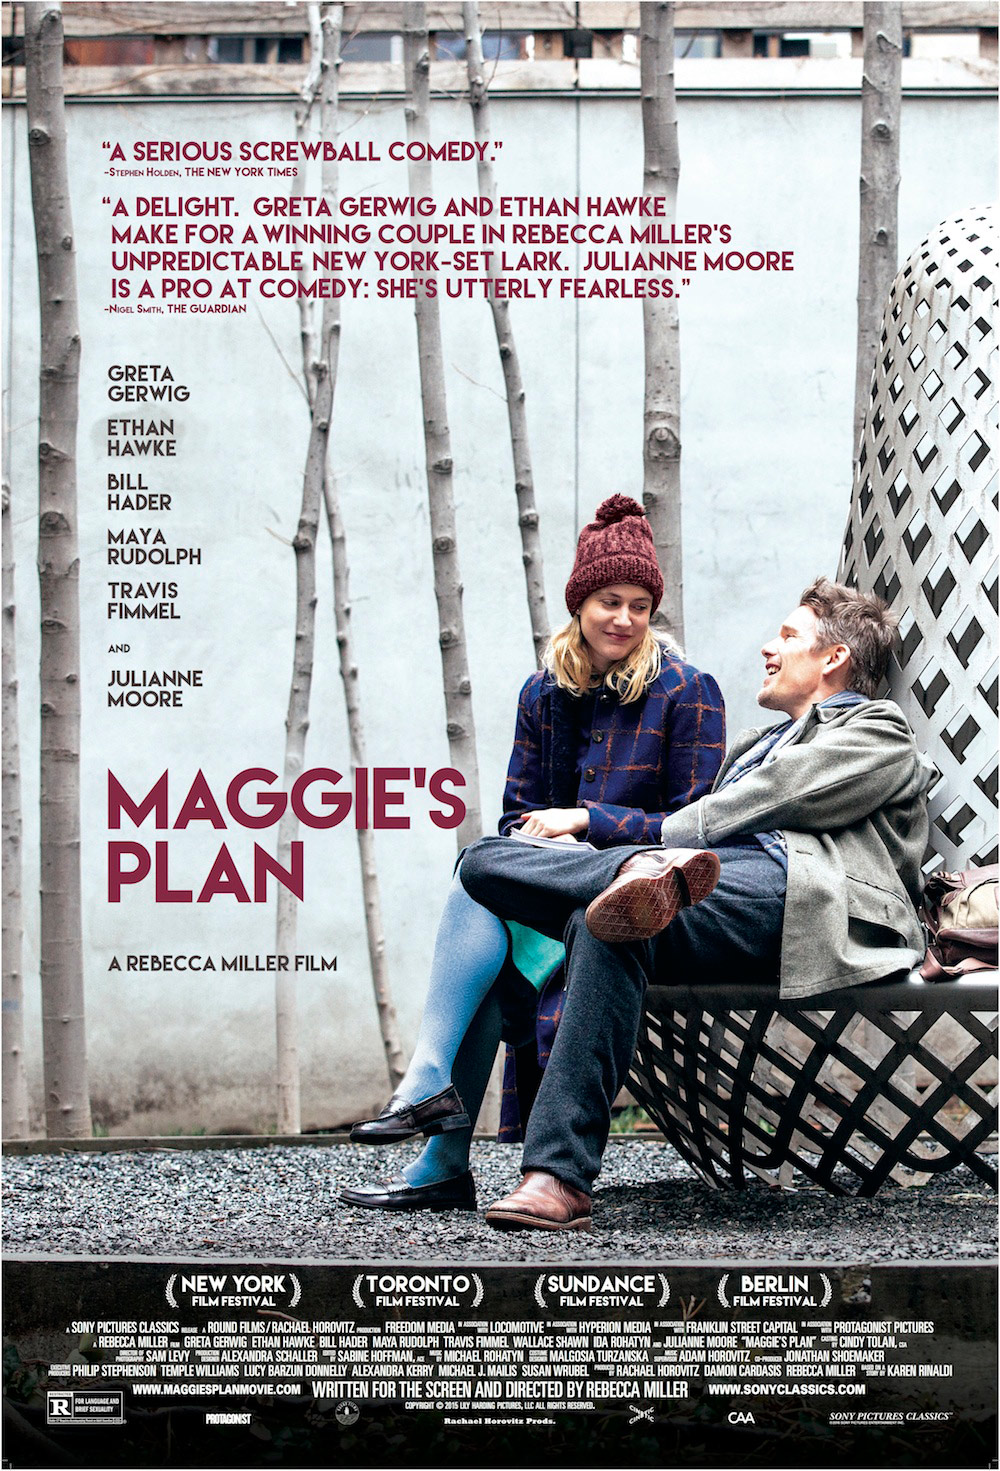 maggies_plan_onesheet_final2